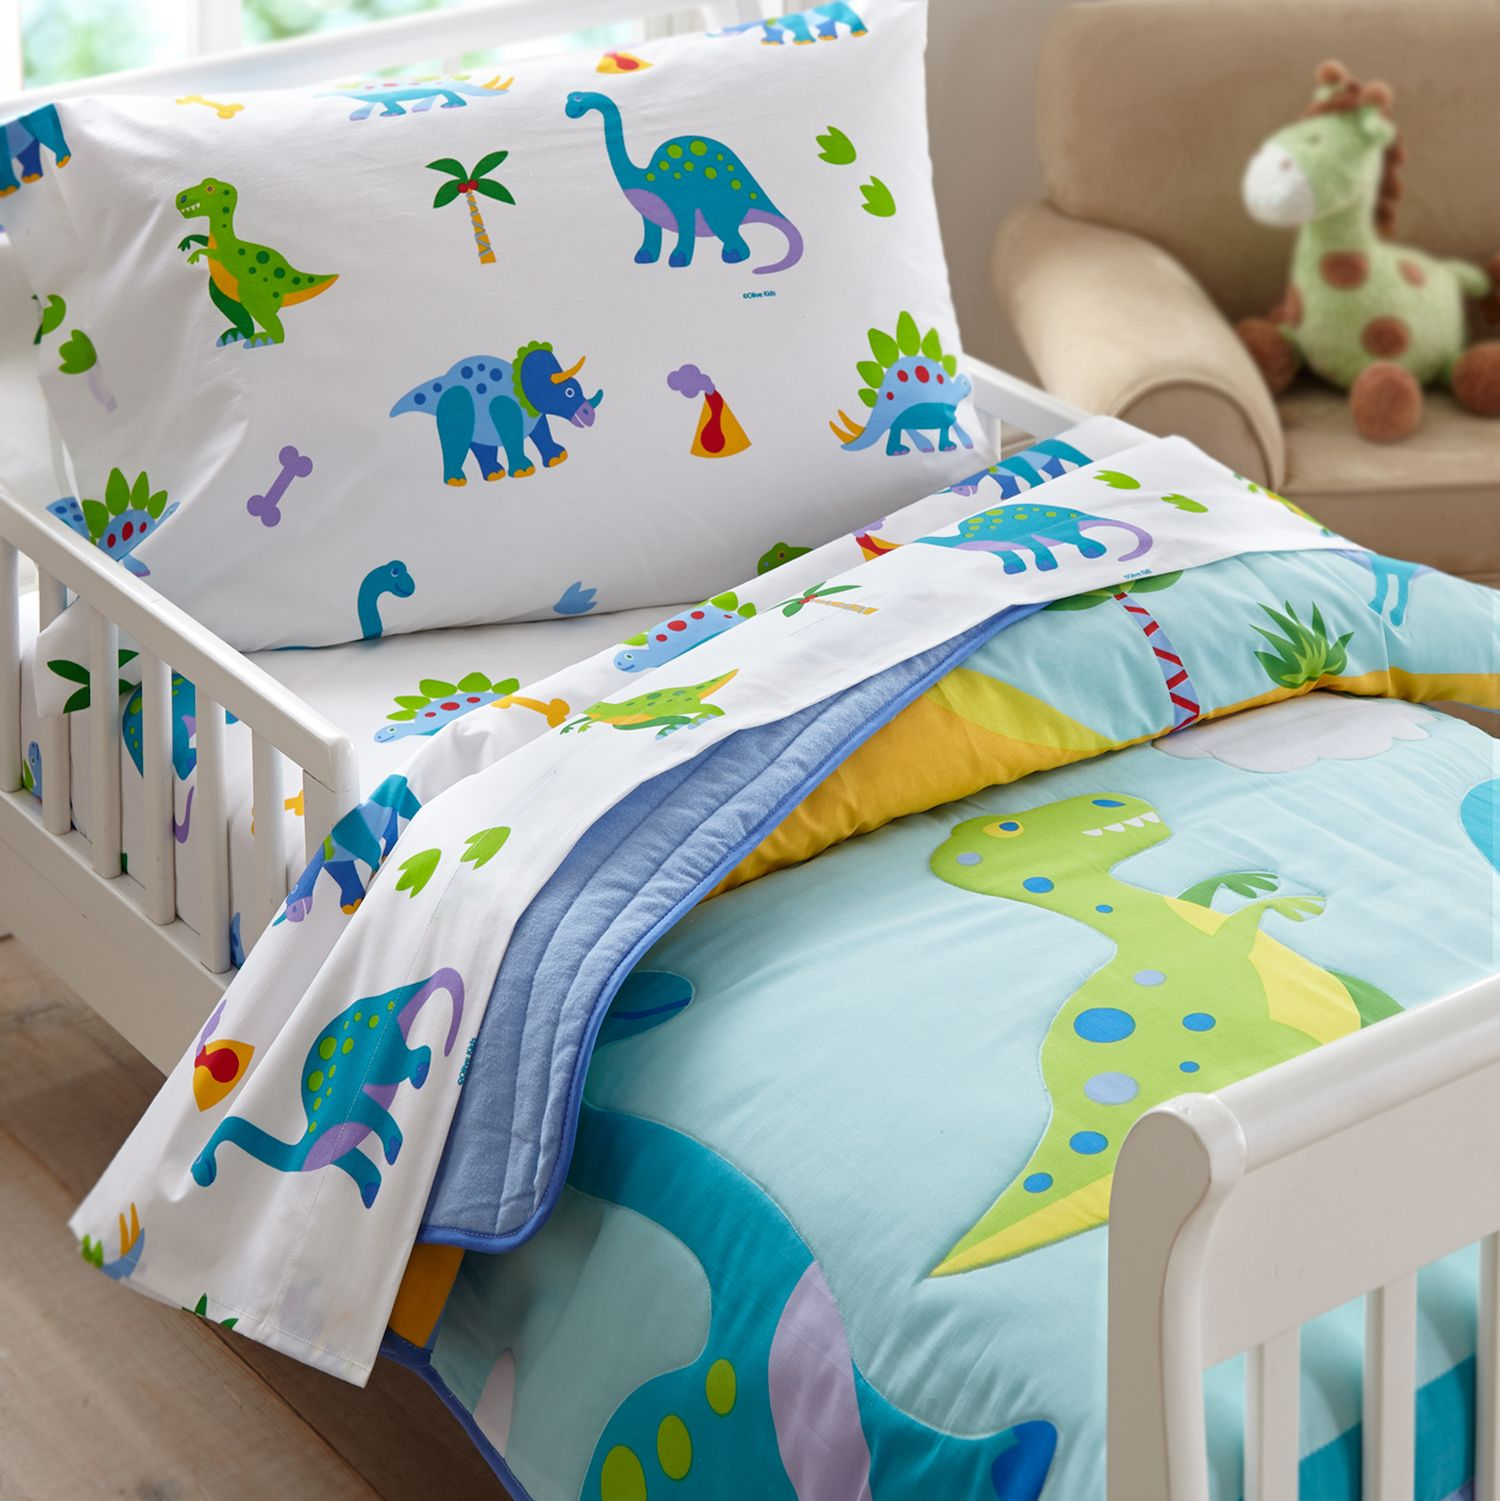 Dinosaurland Blue Green Dinosaur Toddler Bedding Comforter, Sheet Set Or Bed  In A Bag